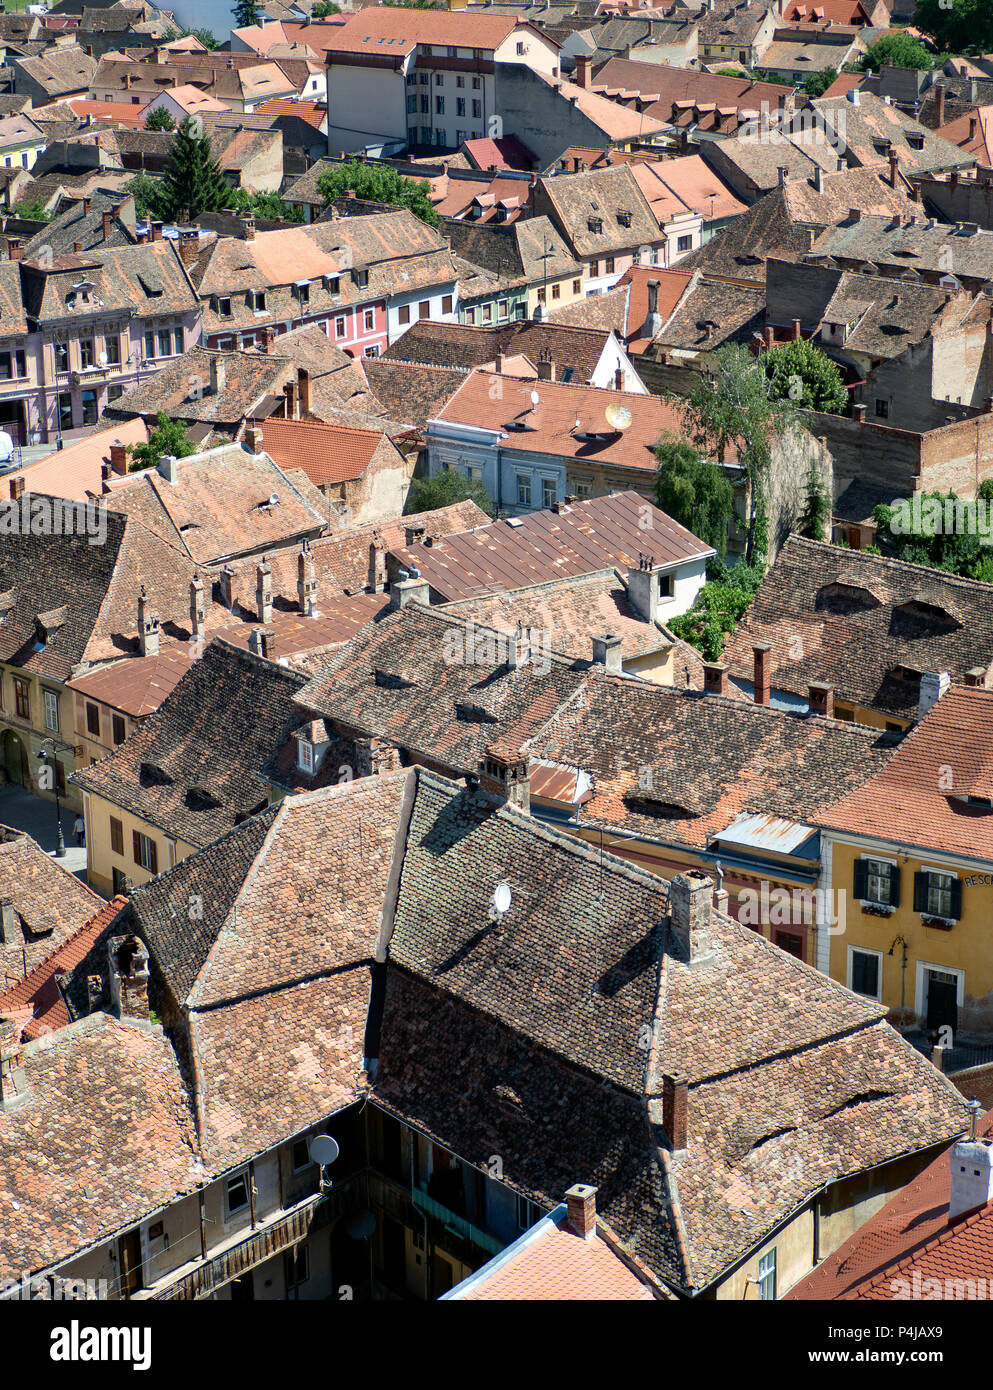 Rooftops of Sibiu old town, Romania - Stock Image